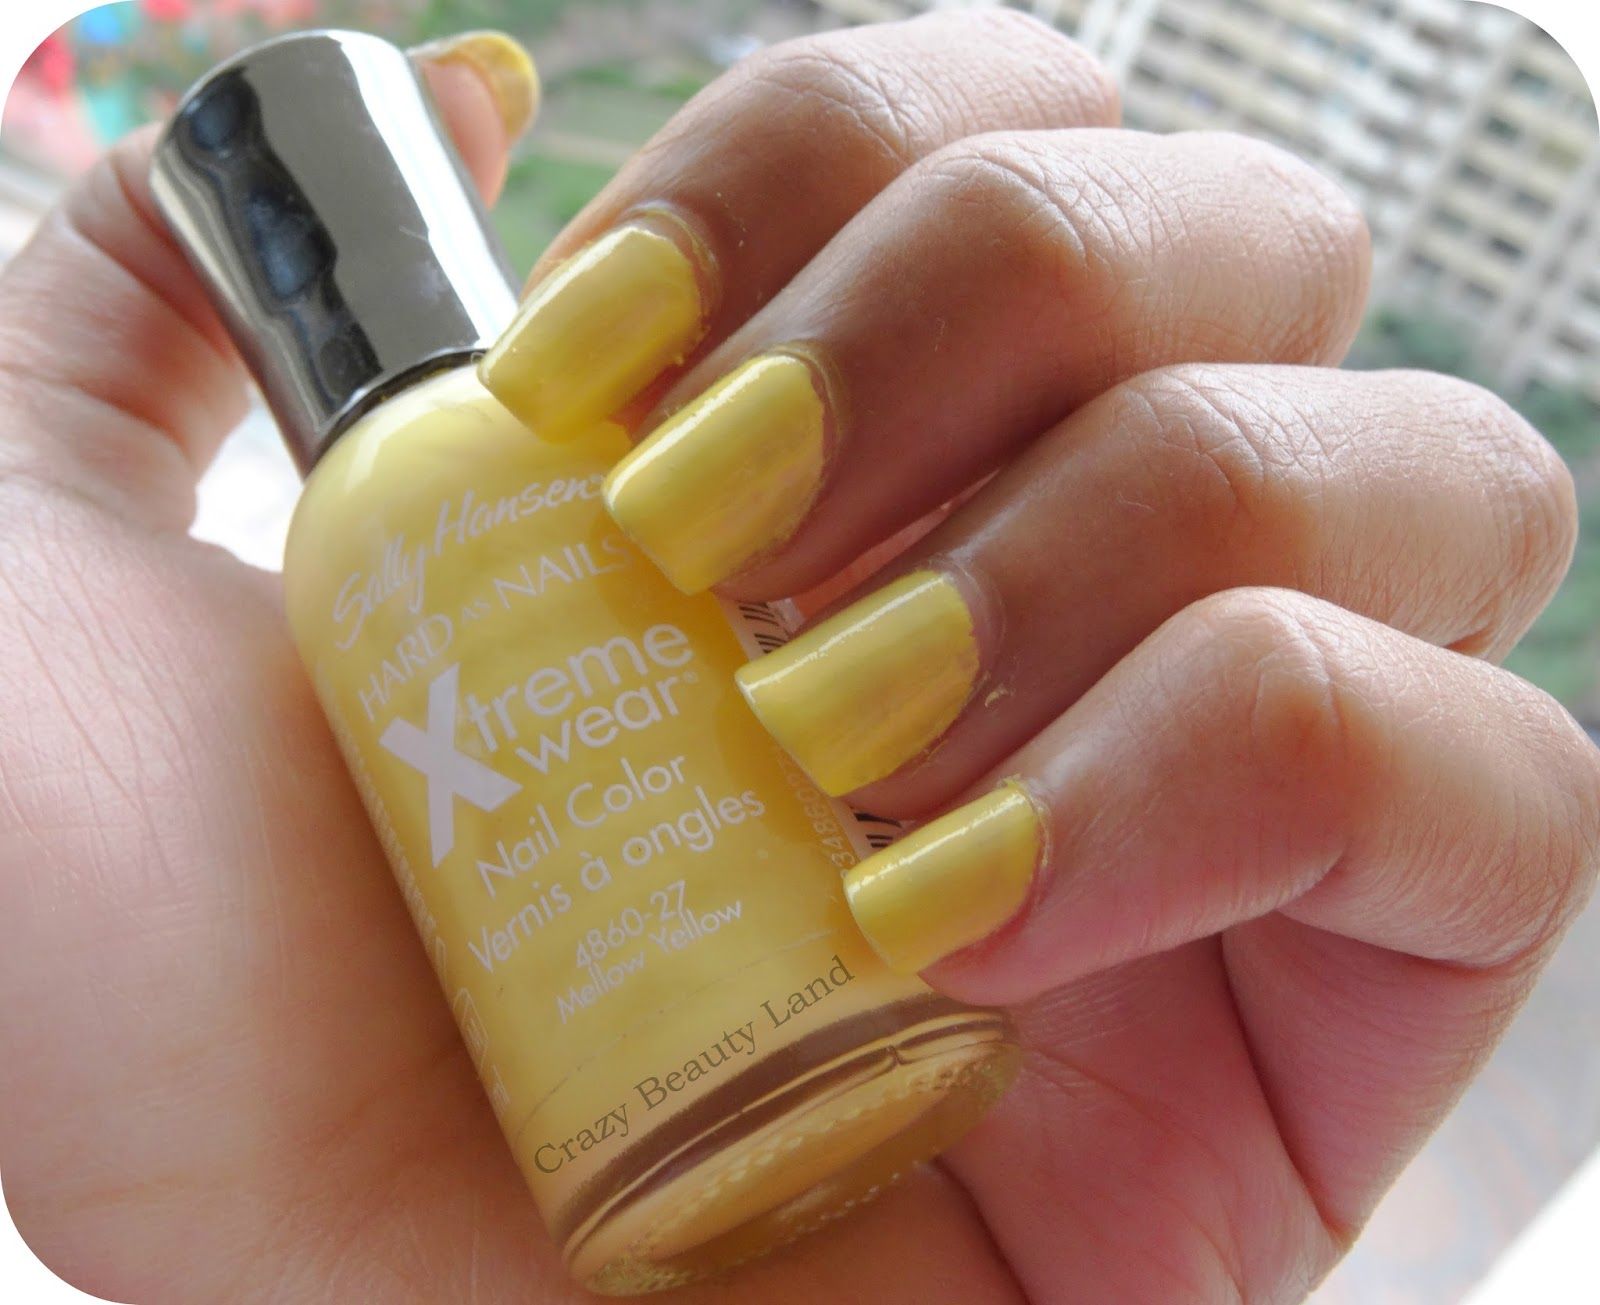 Sally Hansen Hard As Nails Xtreme Wear Nail Color in Mellow Yellow (360)